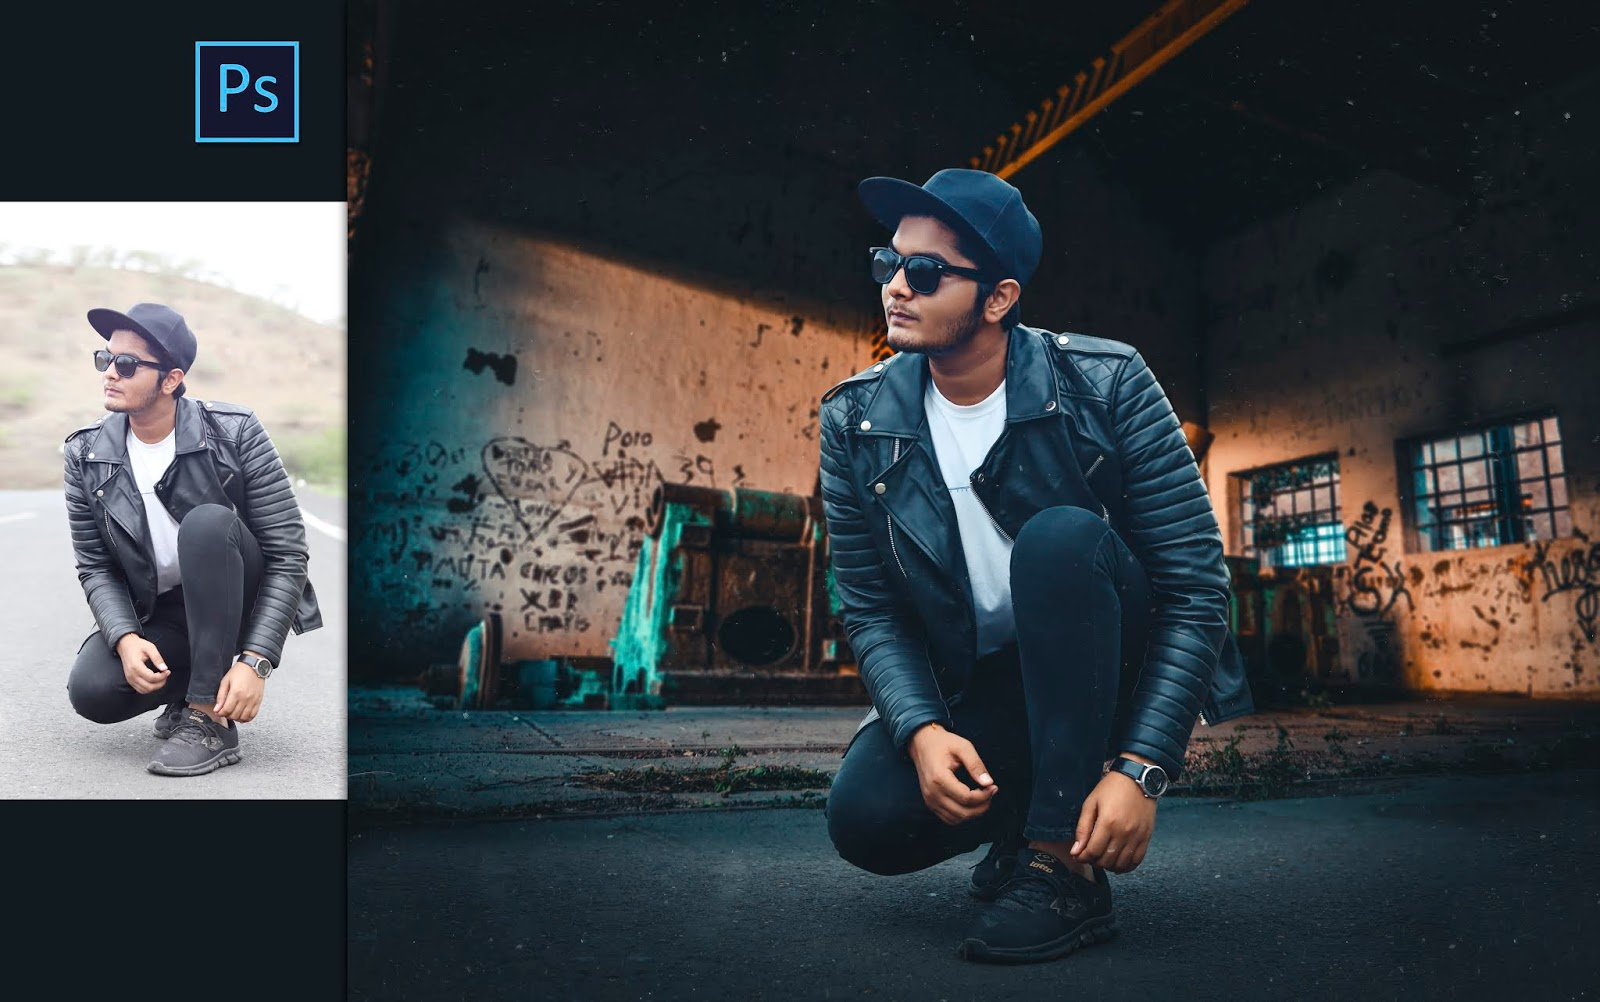 Cinematic Photo Manipulation for Instagram in Photoshop cc